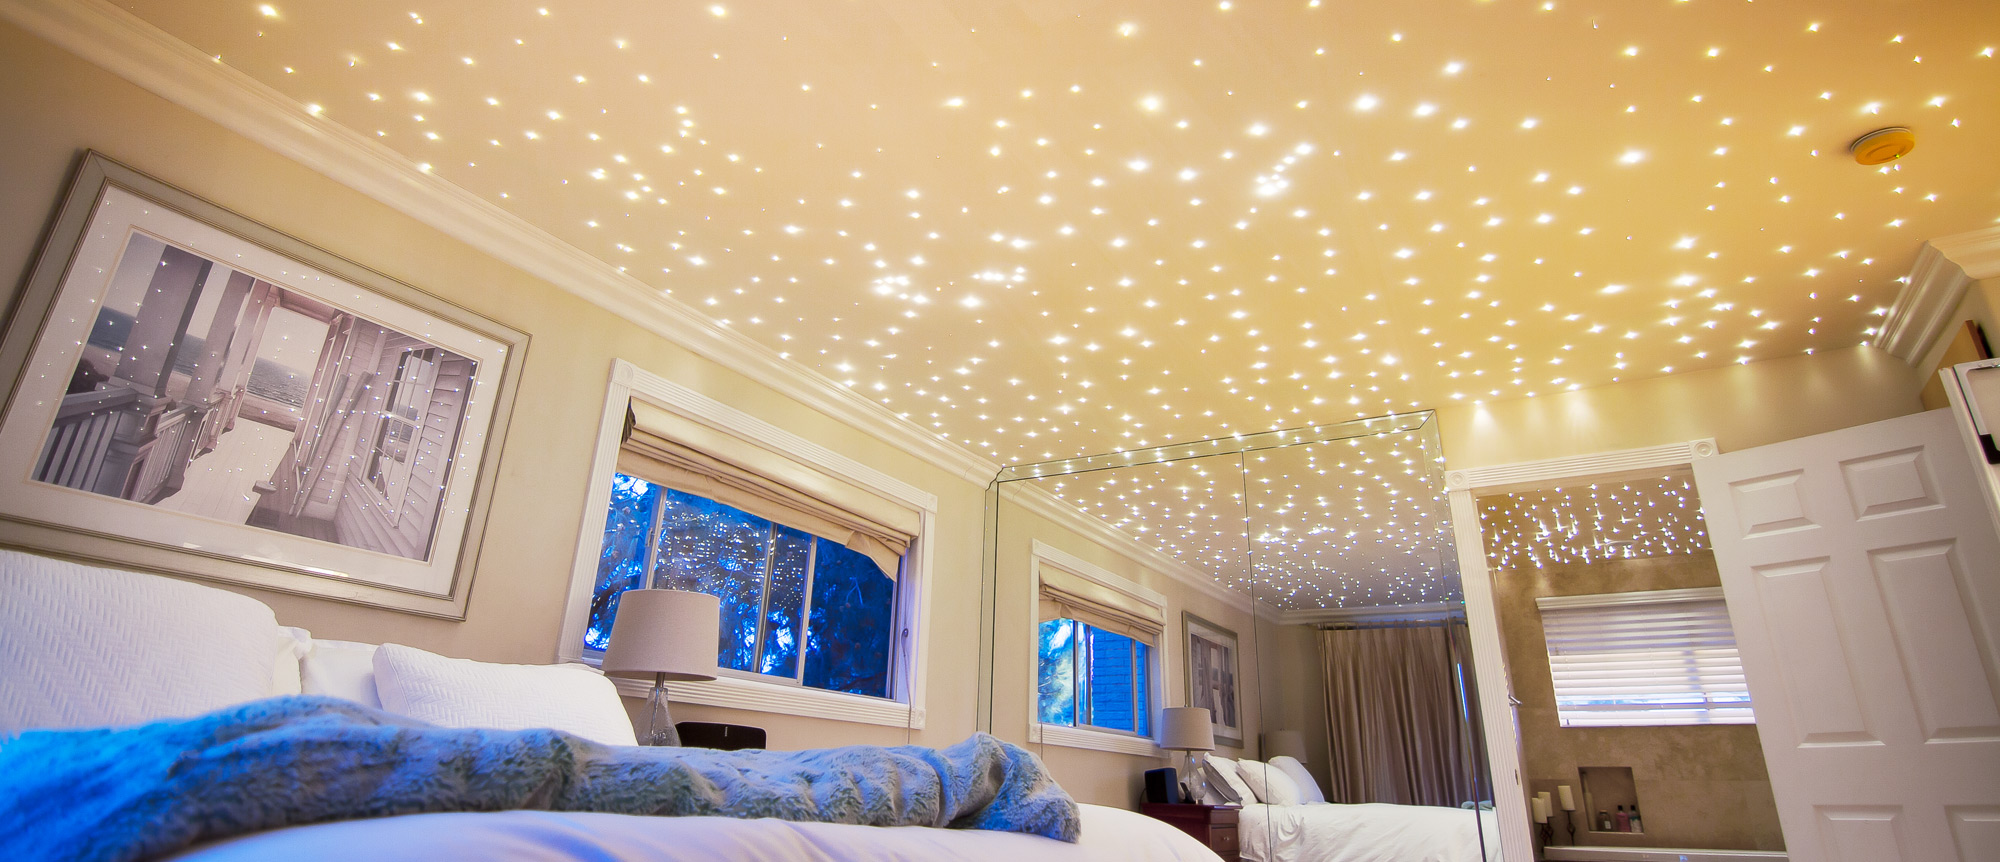 Fiber Optic Starfield Ceilings